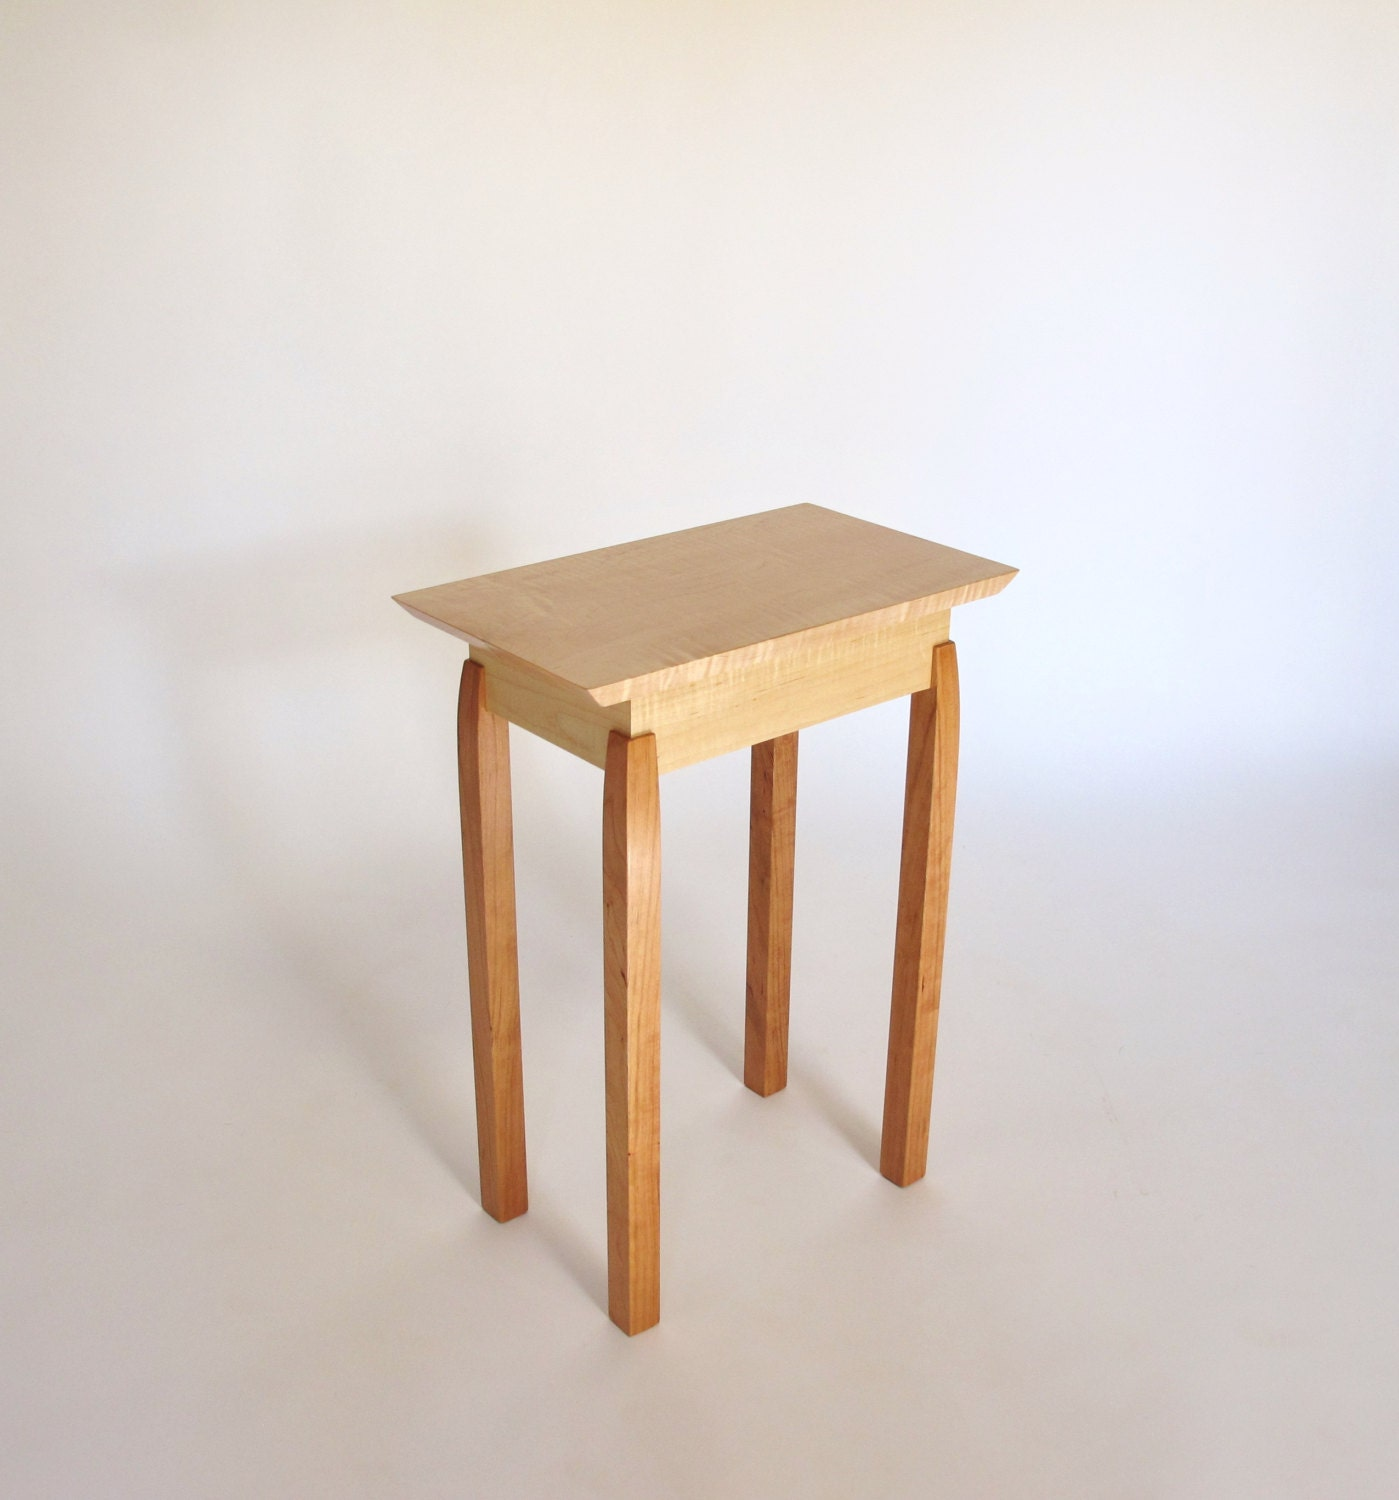 Small End Table Contemporary Wooden Table for Small Spaces